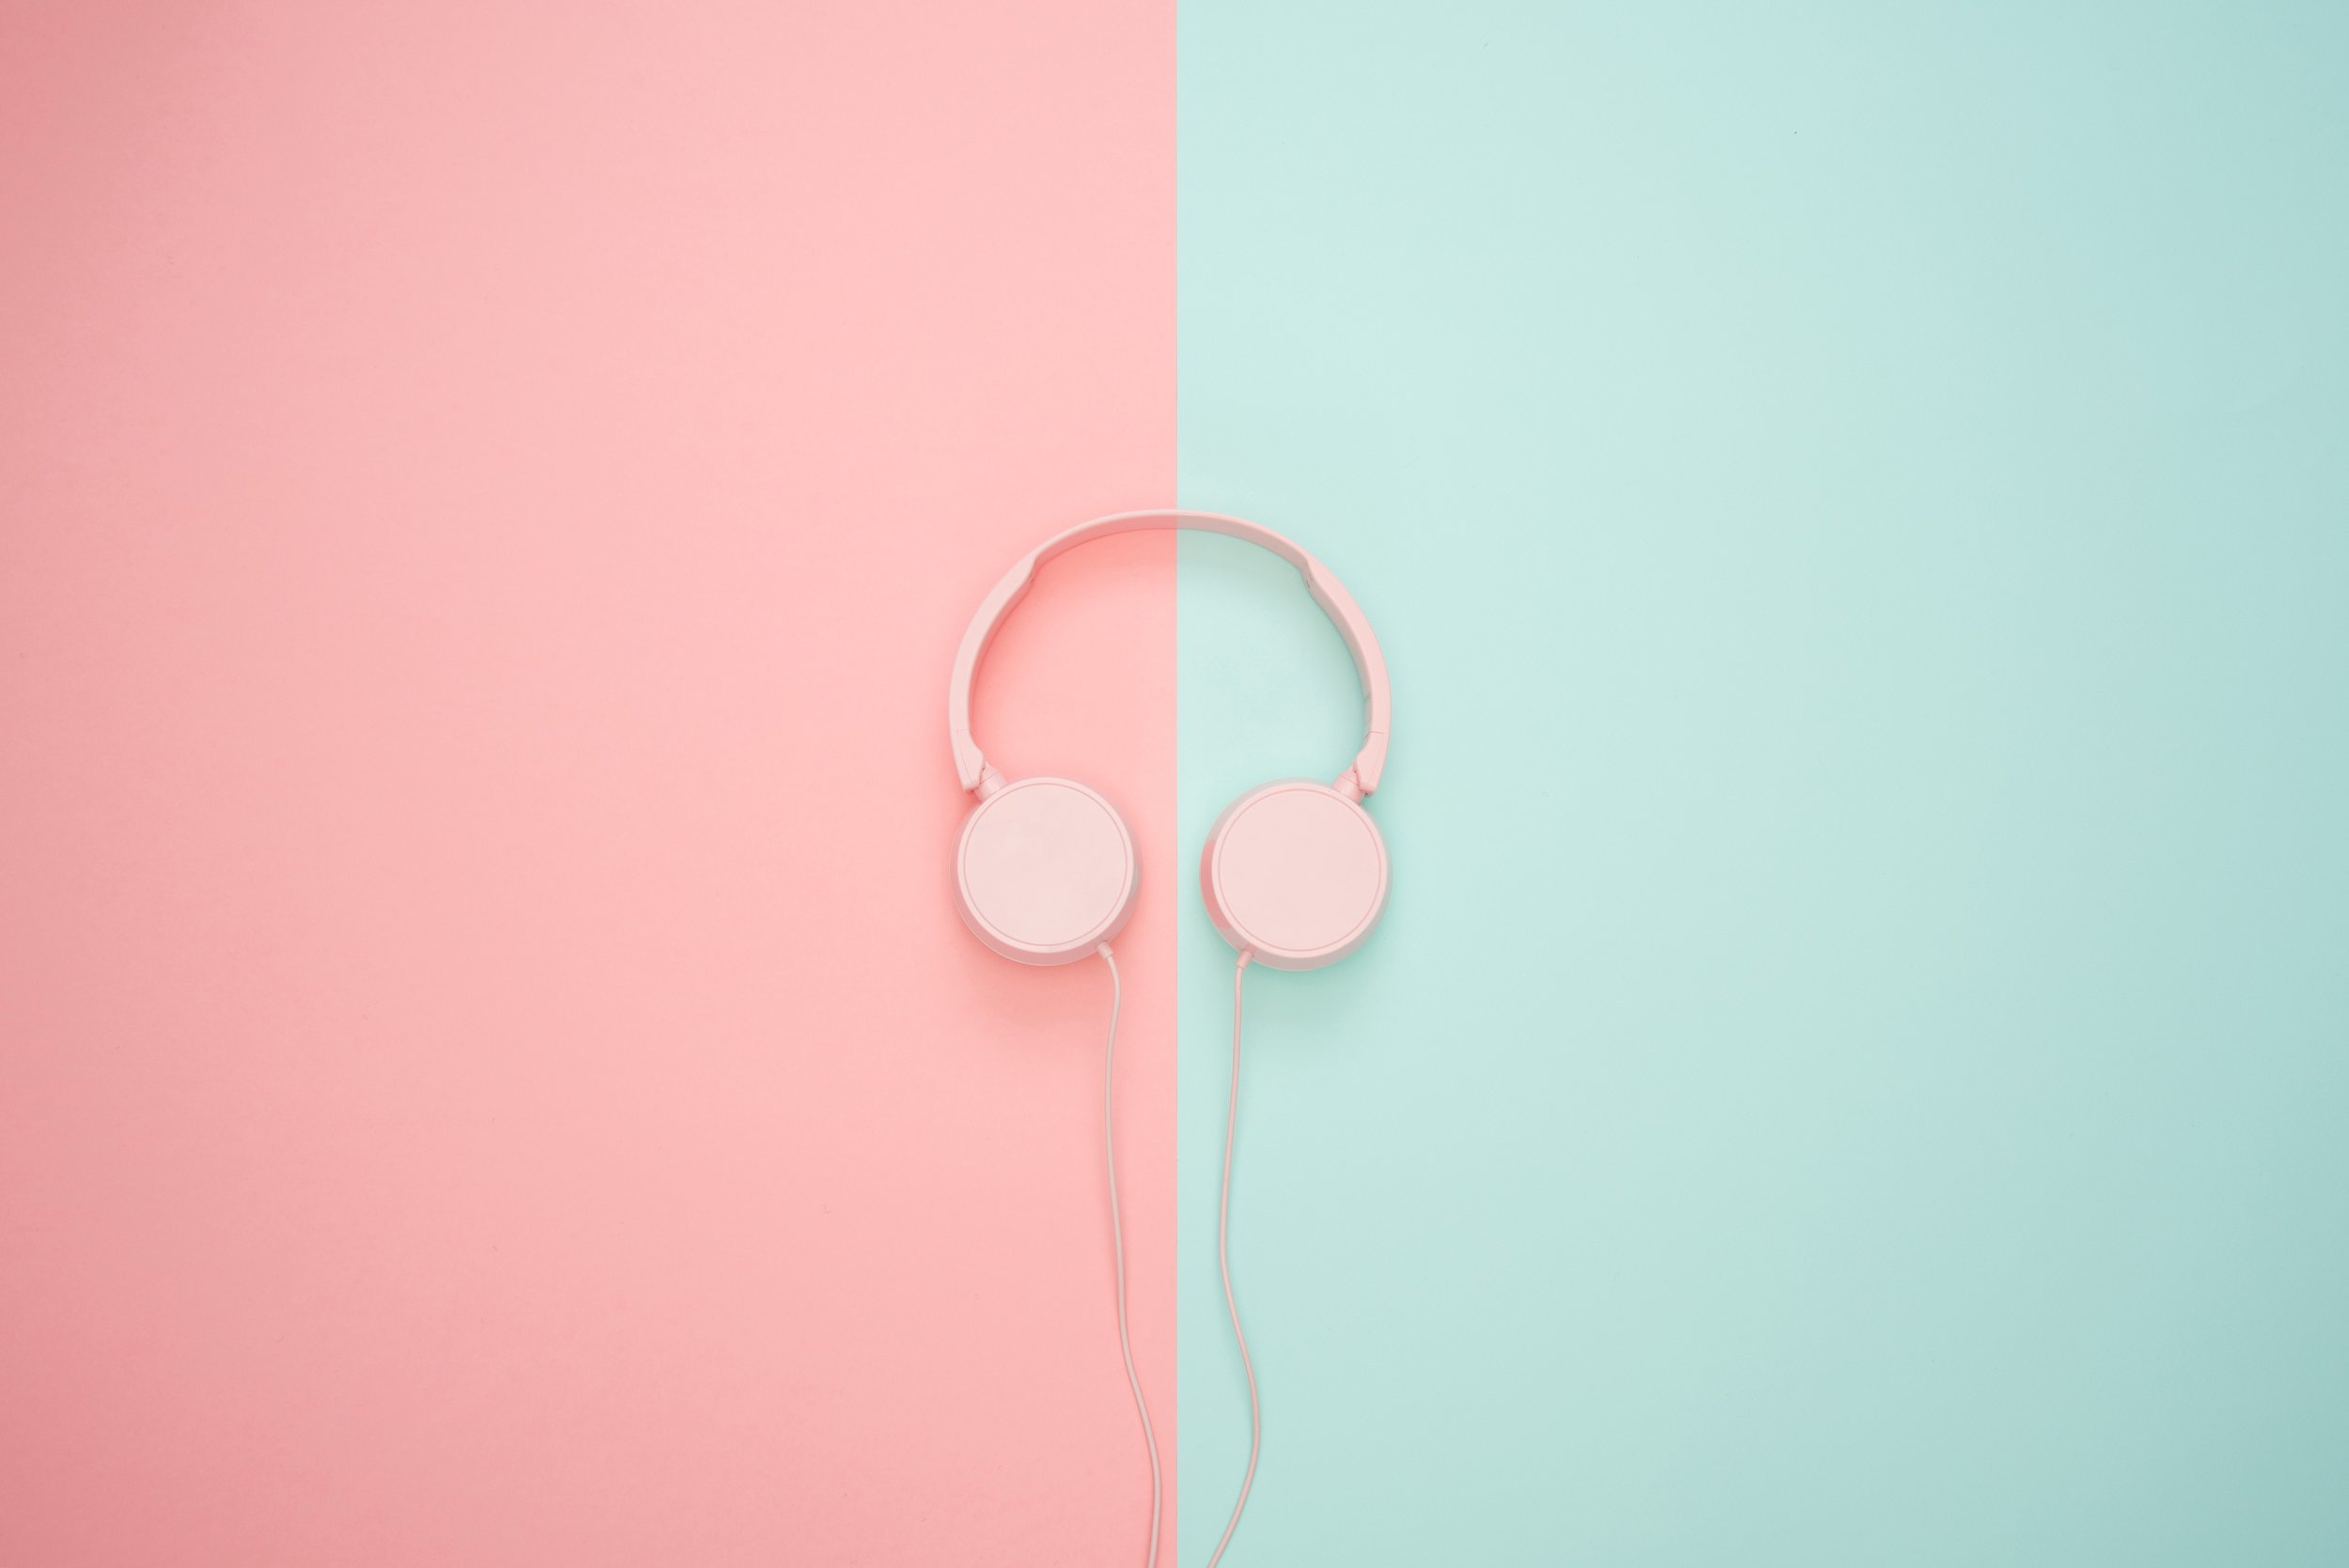 Photo by  Icons8 team  on  Unsplash    [Image Description: Pink headphones lay flat on a pastel pink and mint background]